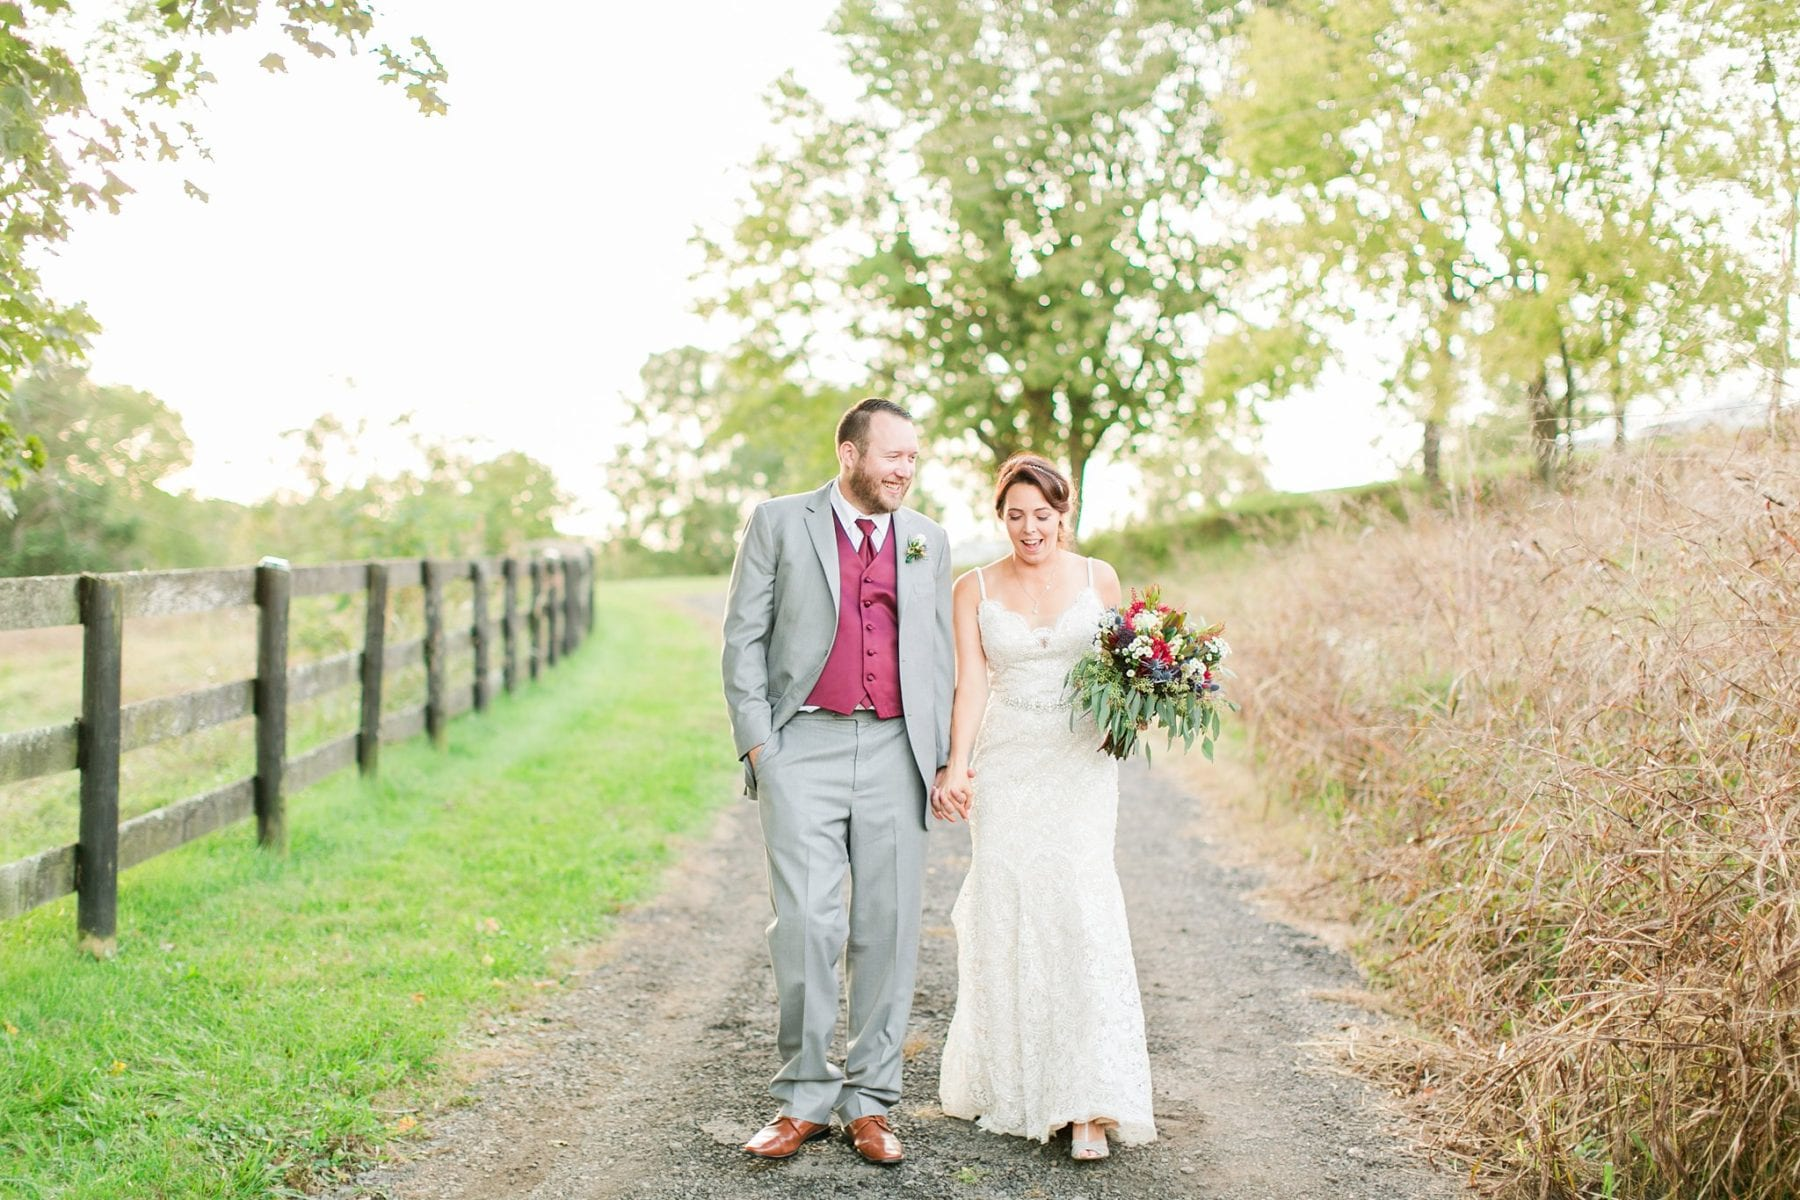 Tranquility Farm Wedding Photos Leesburg Wedding Photographer Megan Kelsey Photography Virginia Wedding Photographer Matt & Colleen-146.jpg